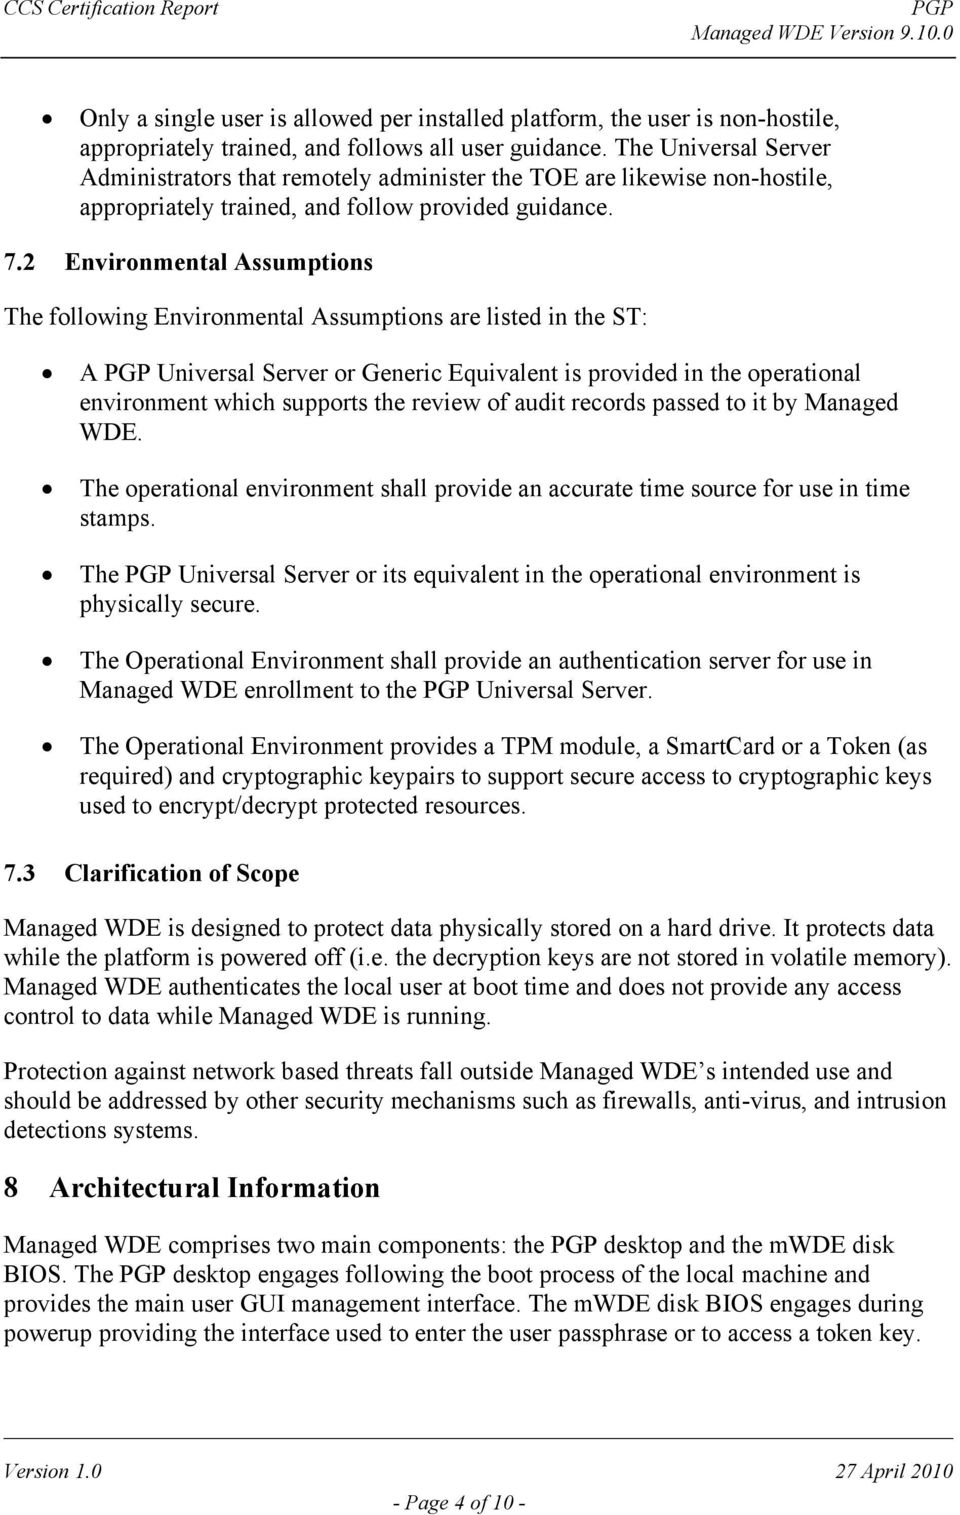 2 Environmental Assumptions The following Environmental Assumptions are listed in the ST: A Universal Server or Generic Equivalent is provided in the operational environment which supports the review